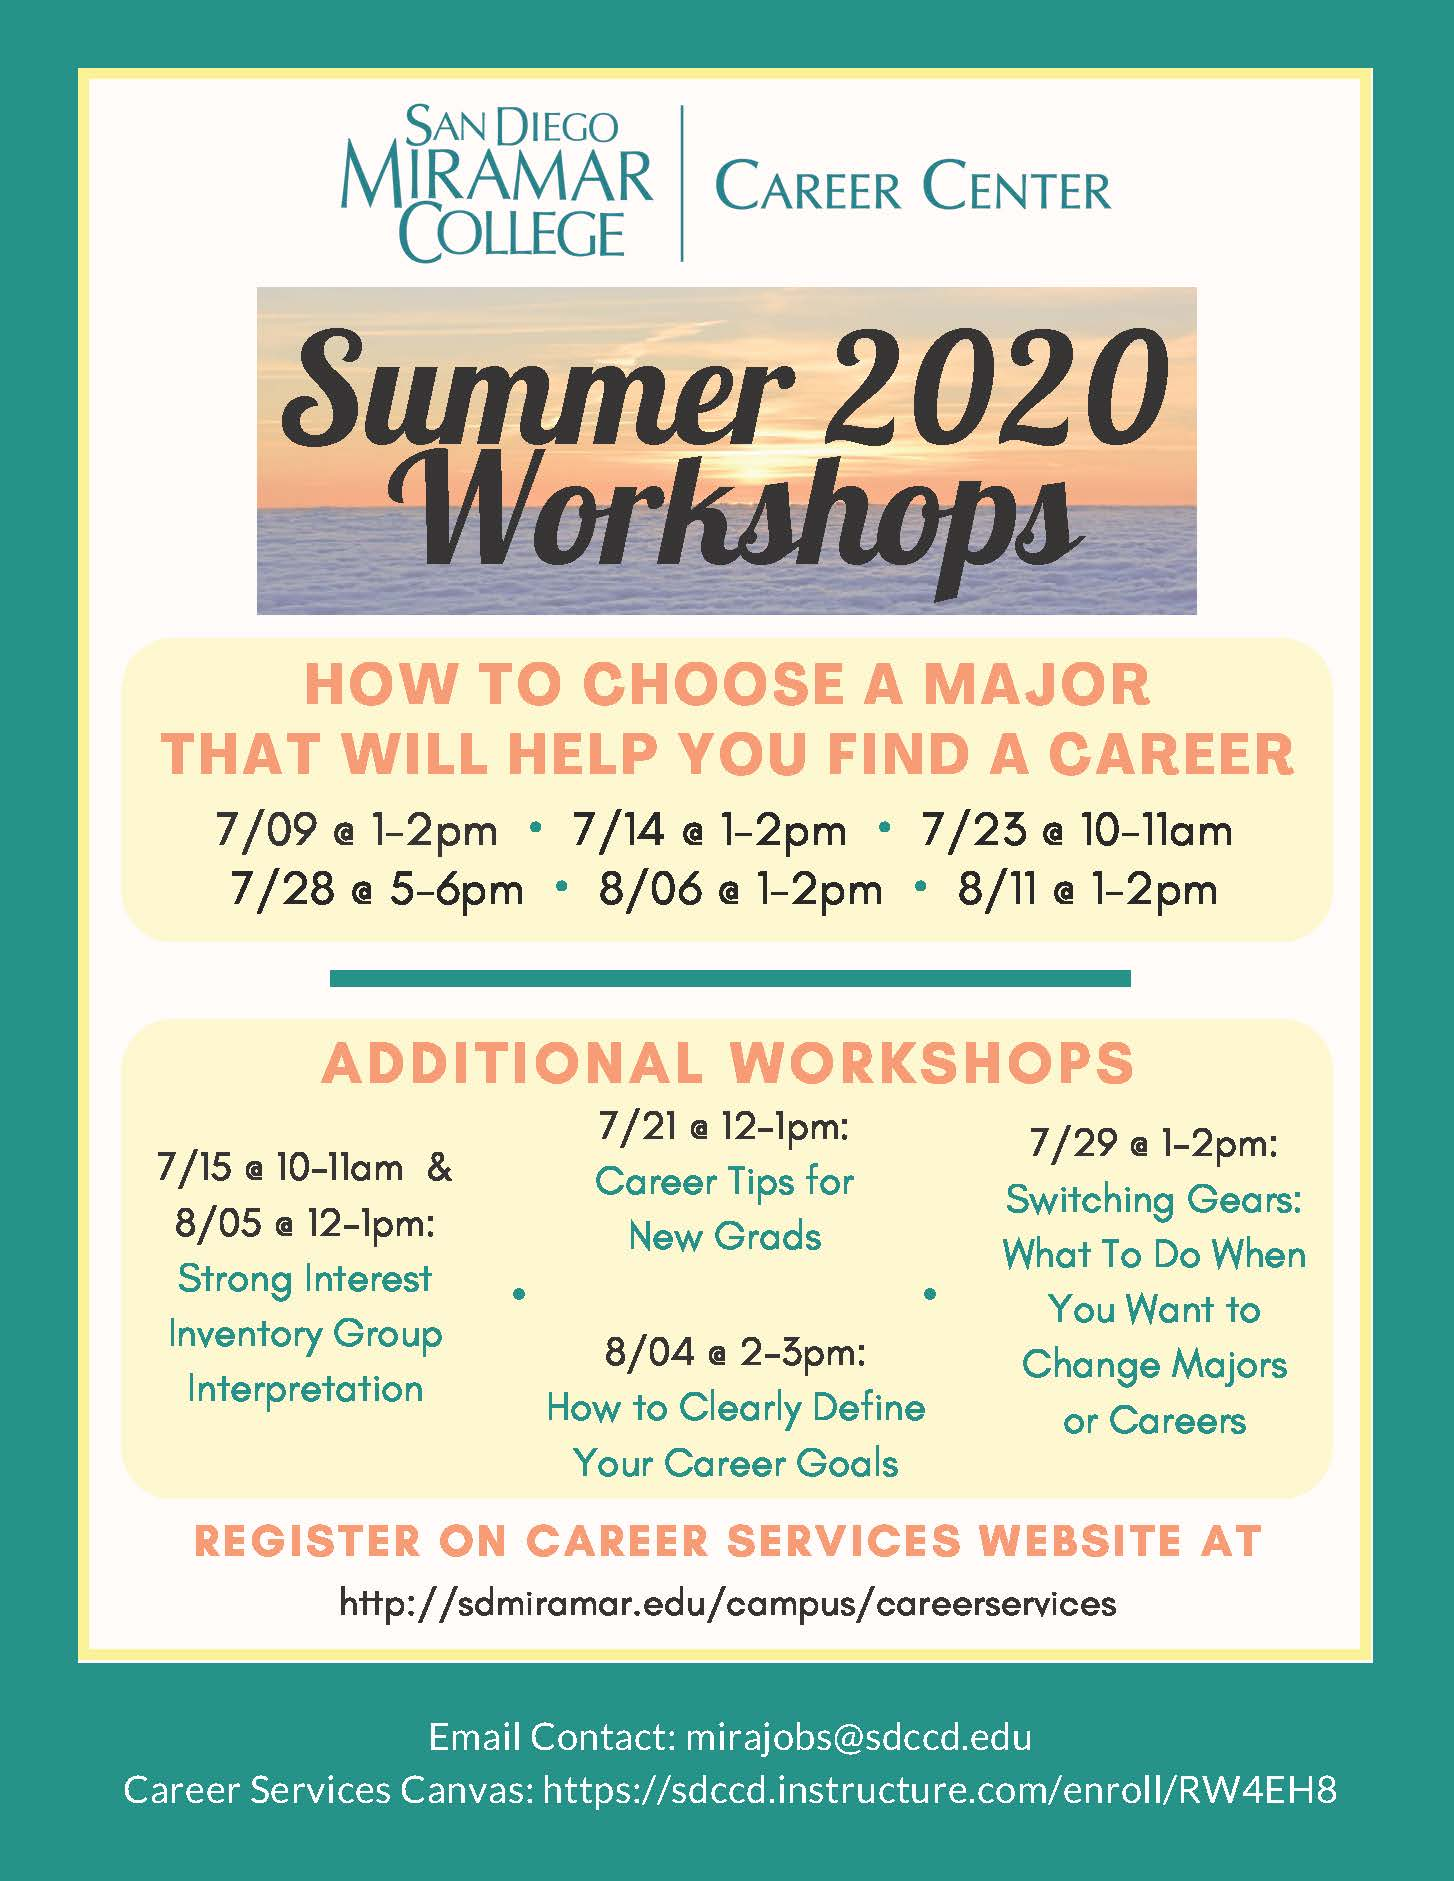 Career Center Summer 2020 - July and Aug workshops